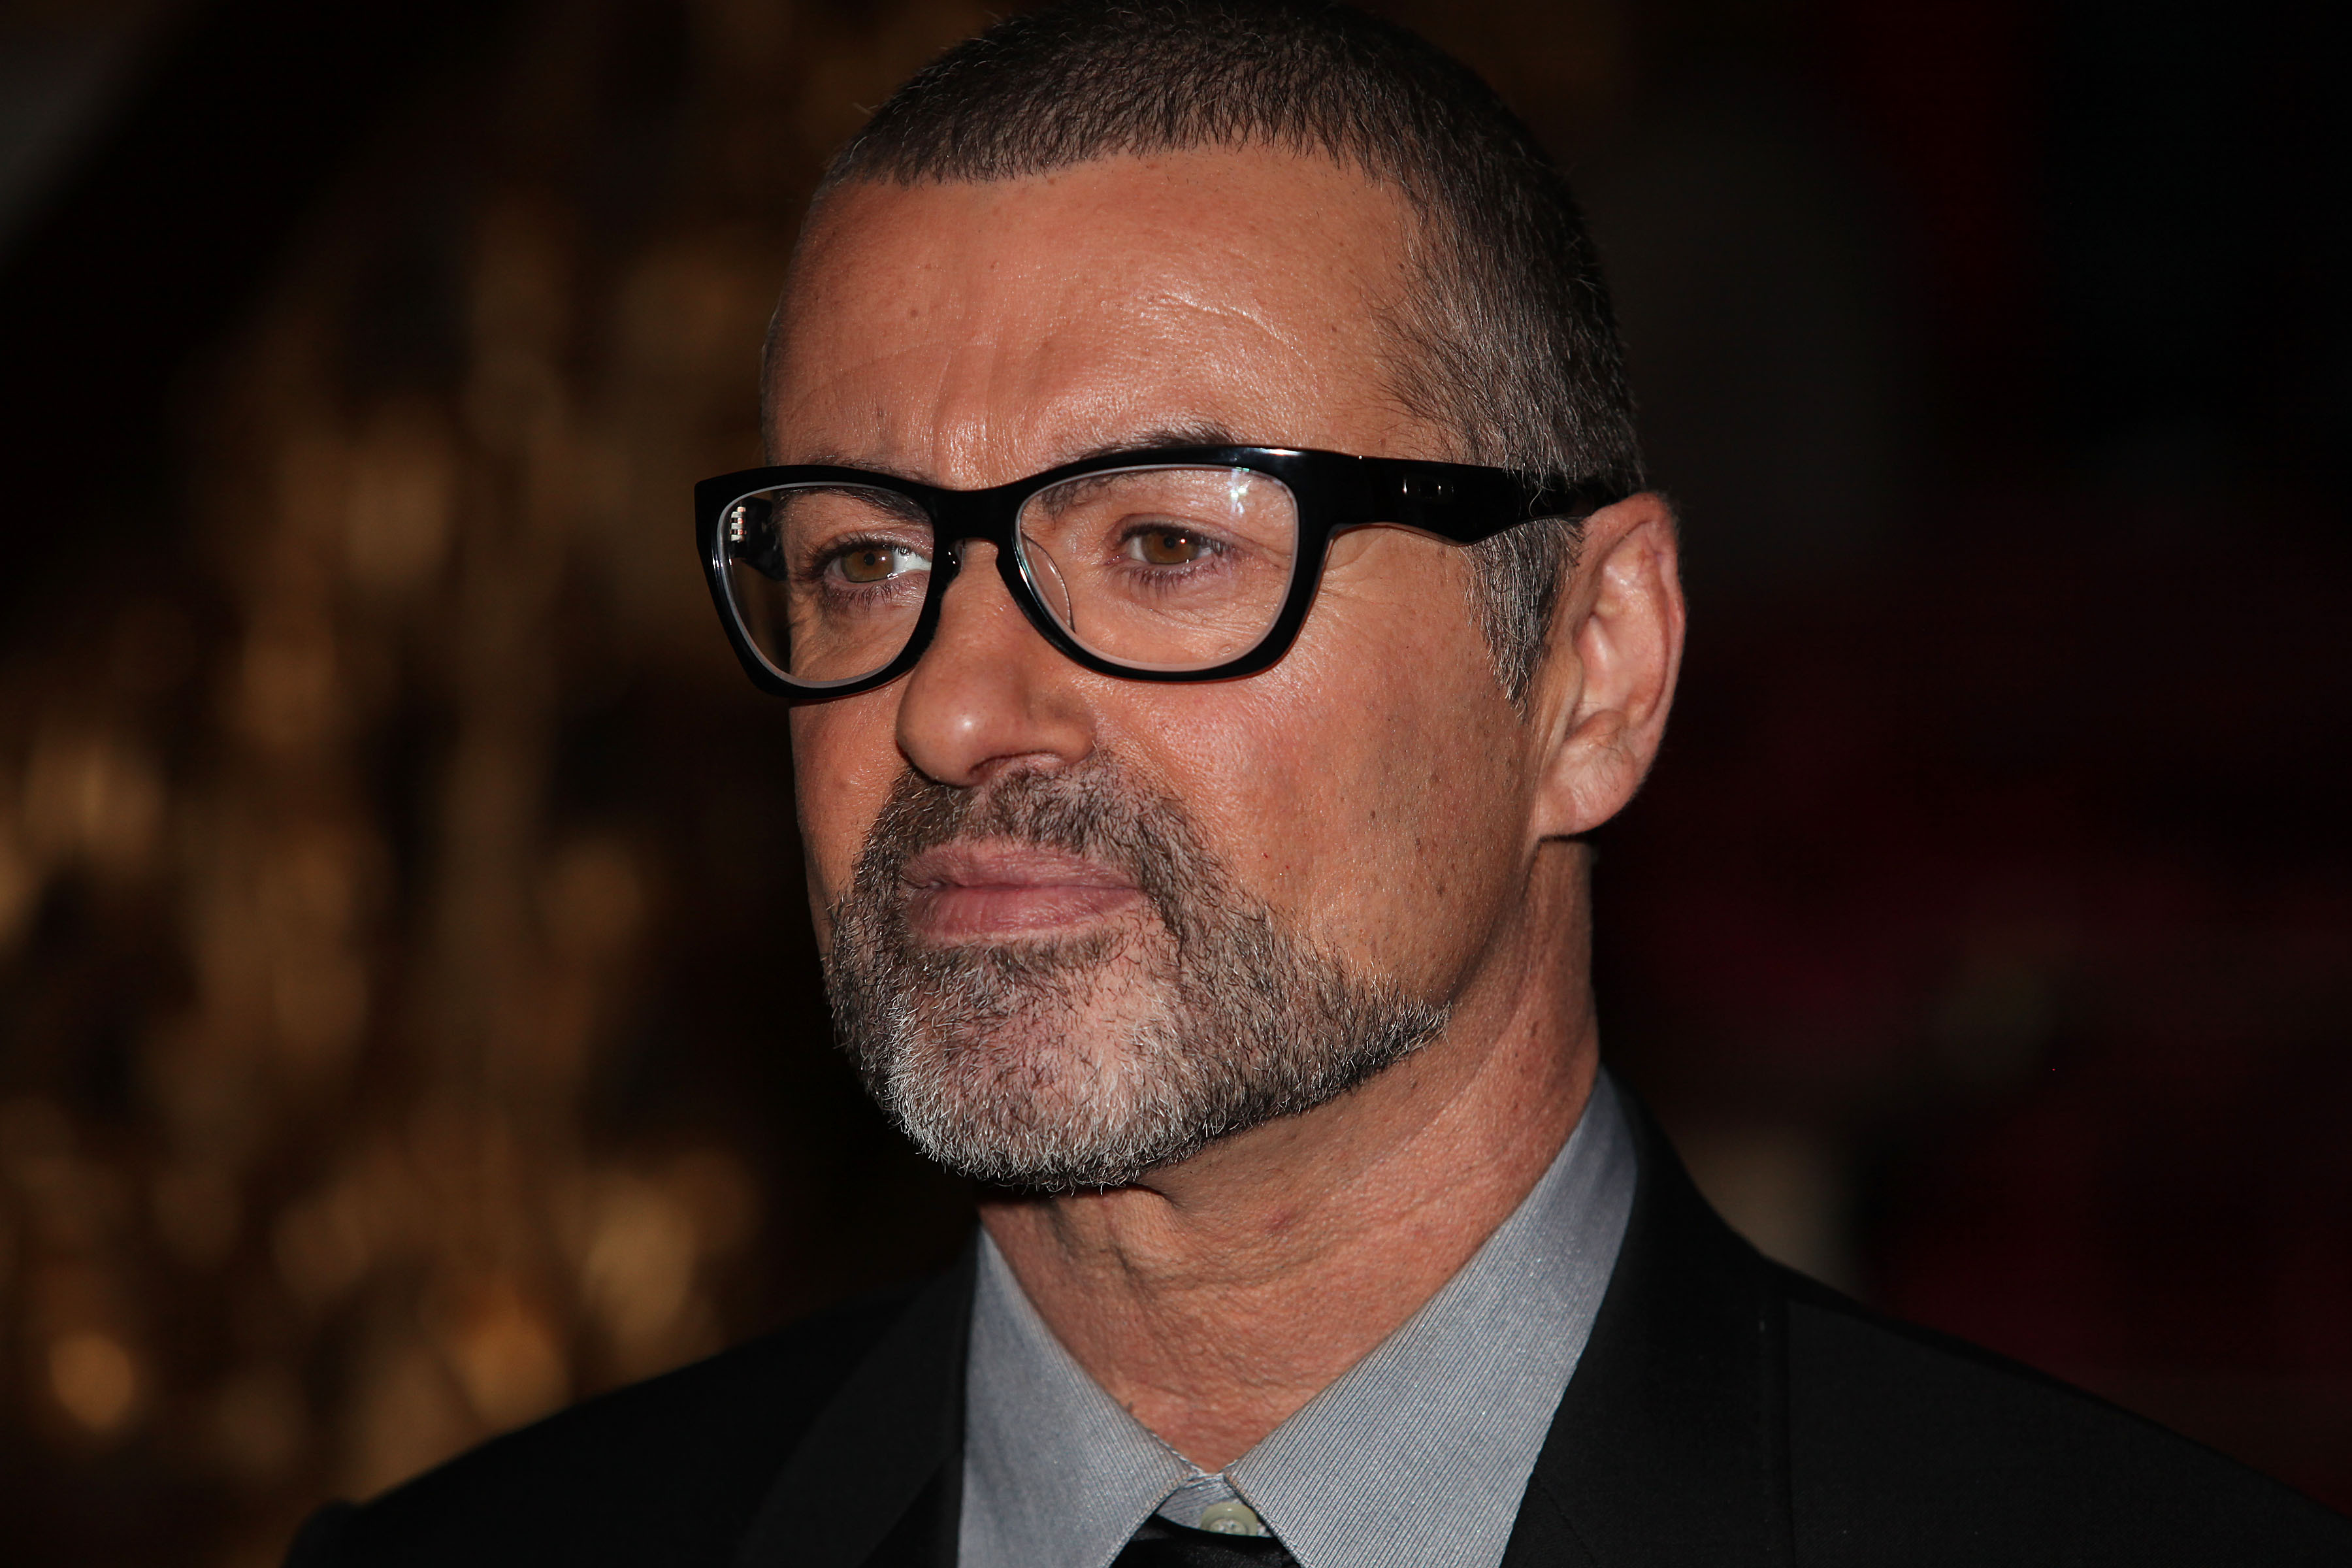 george michael wallpaper background 61646